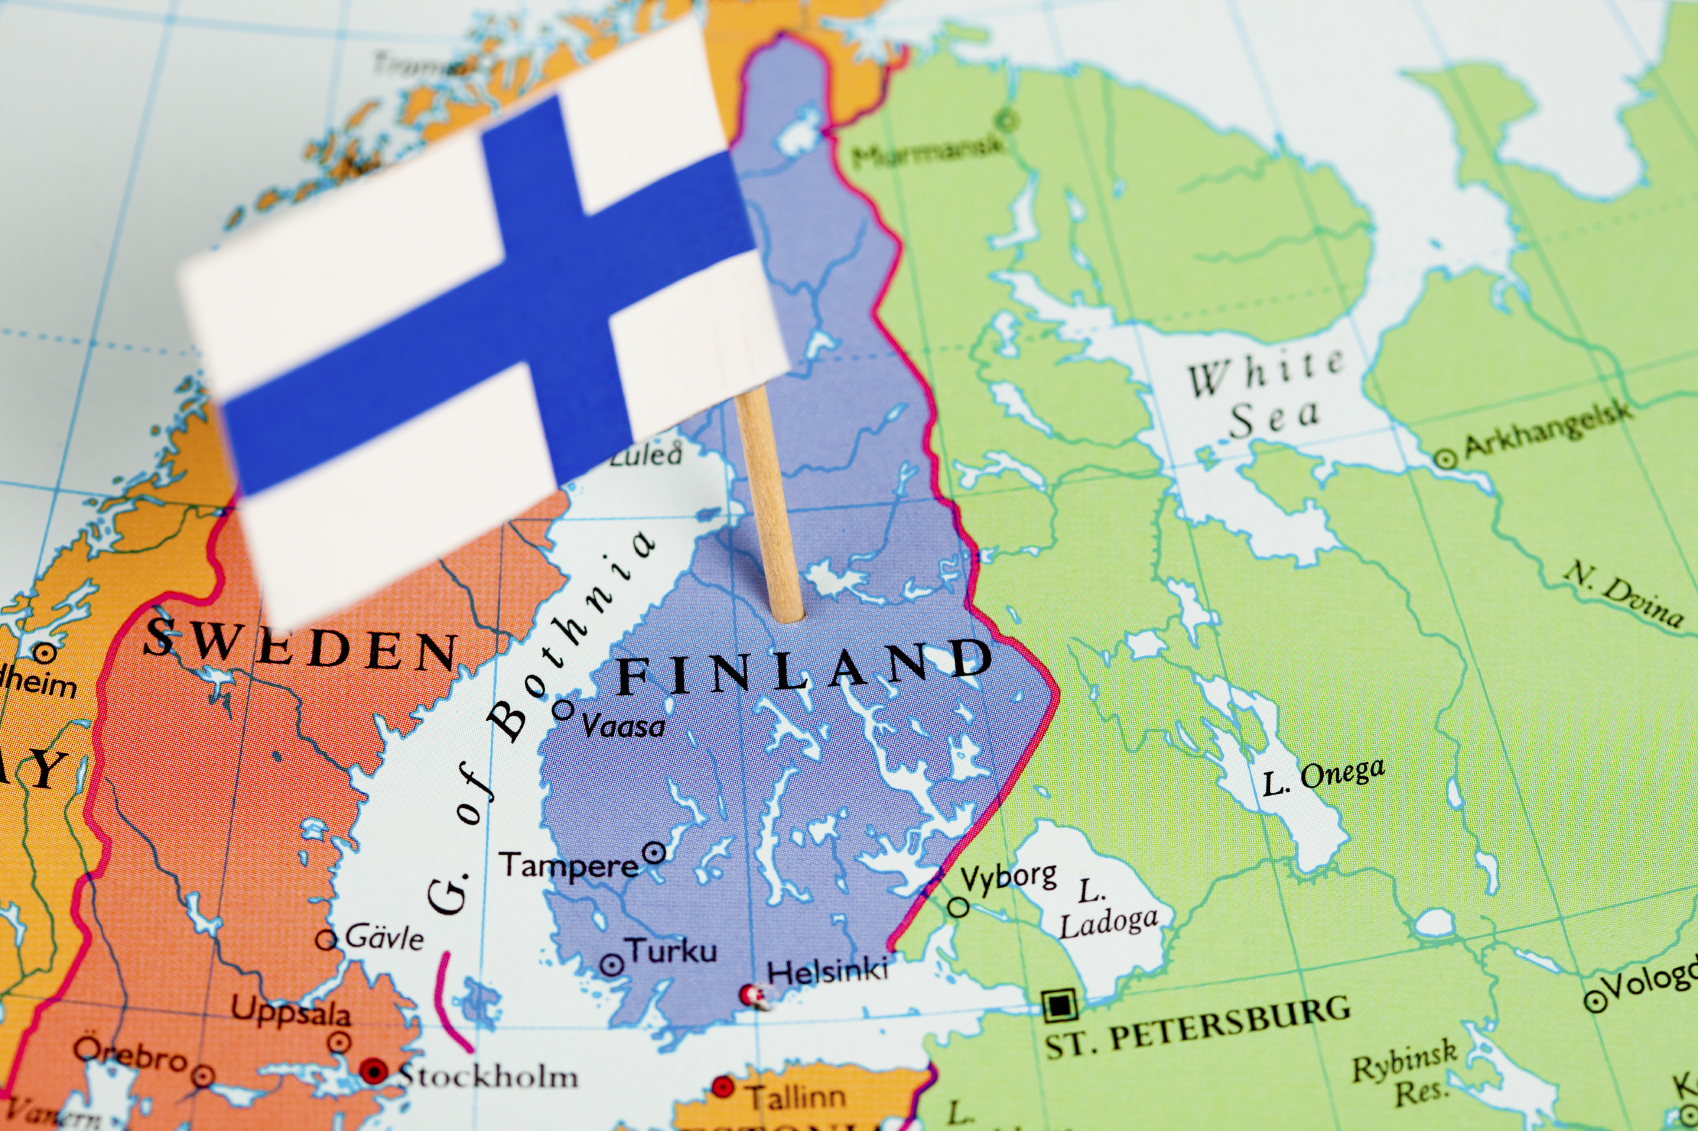 Taxation Of Cross-Border Mergers And Acquisitions: Finland 2016